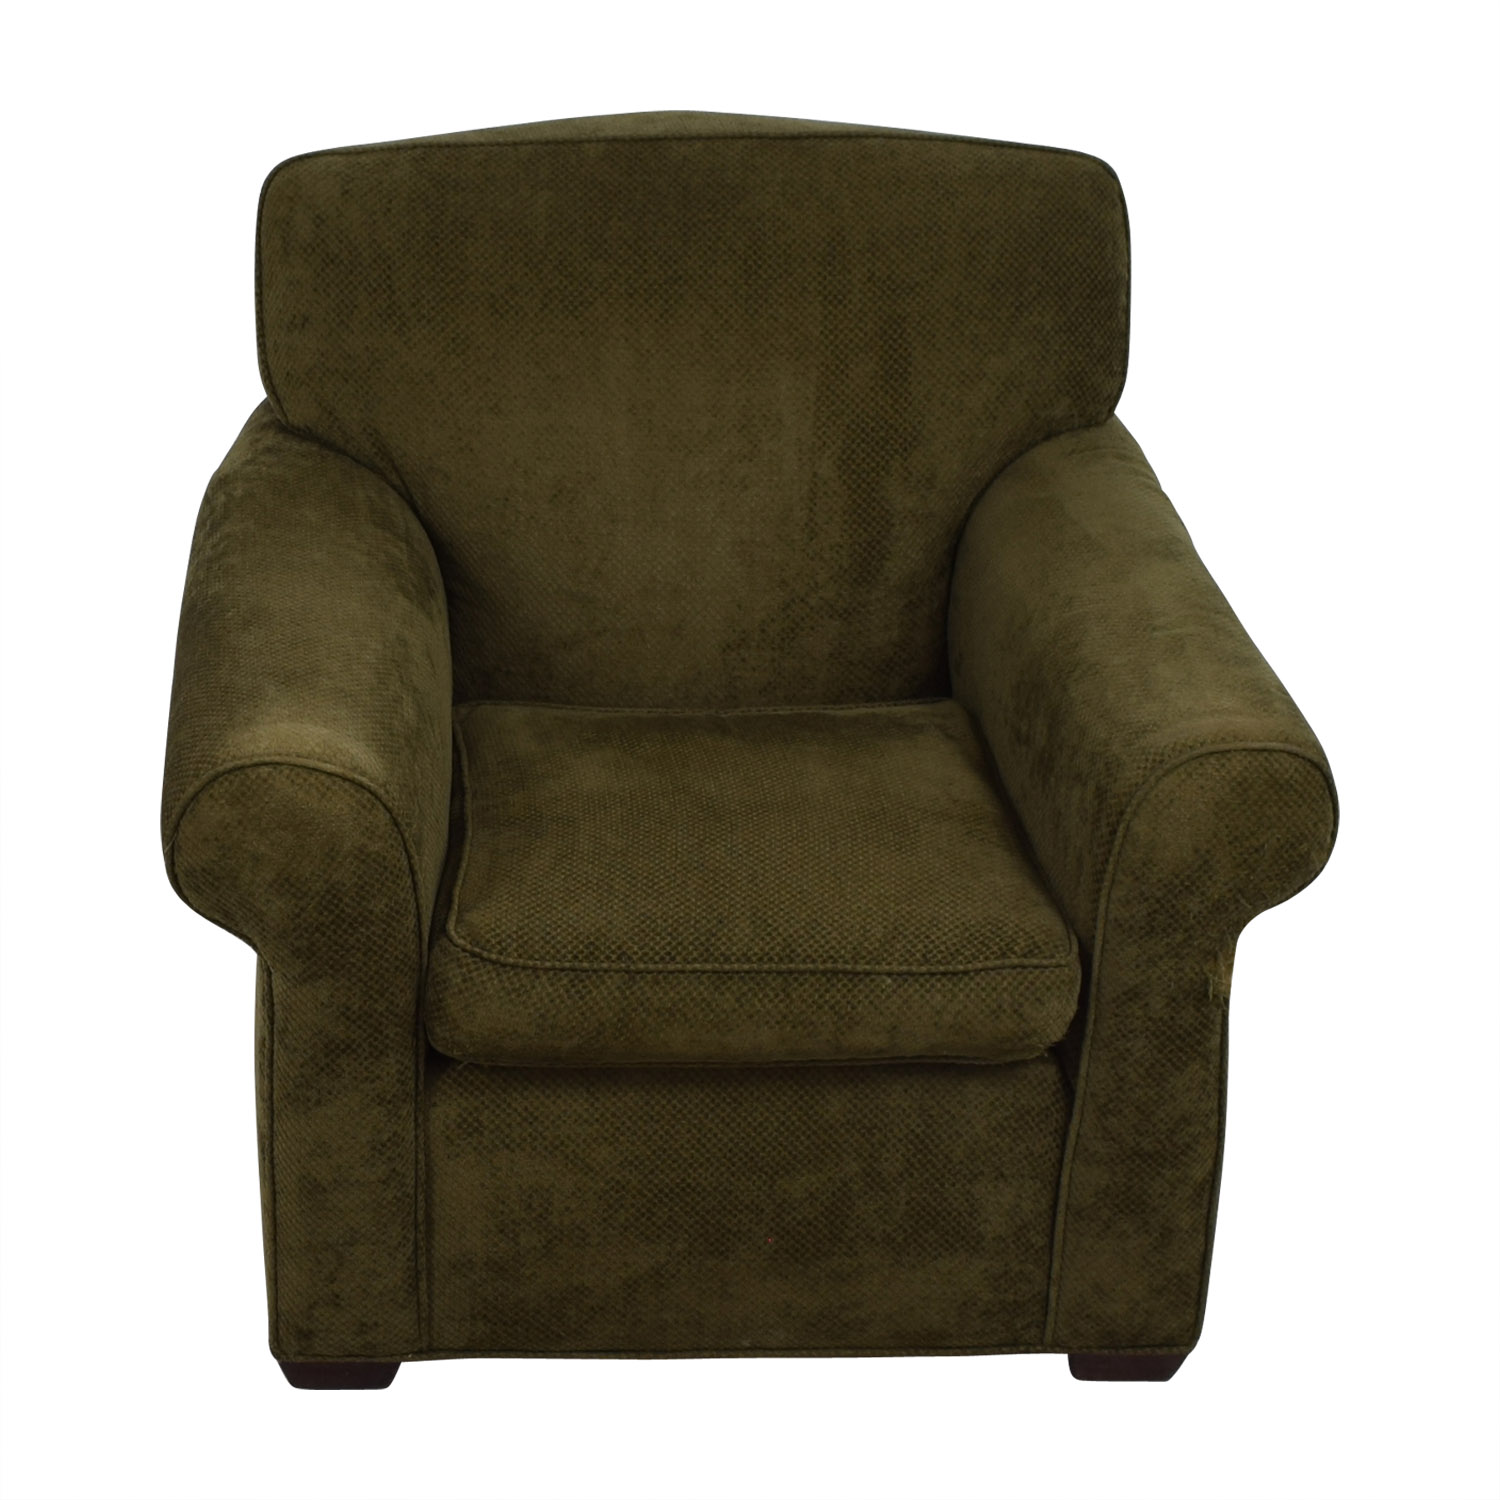 Large Olive Green Accent Chair